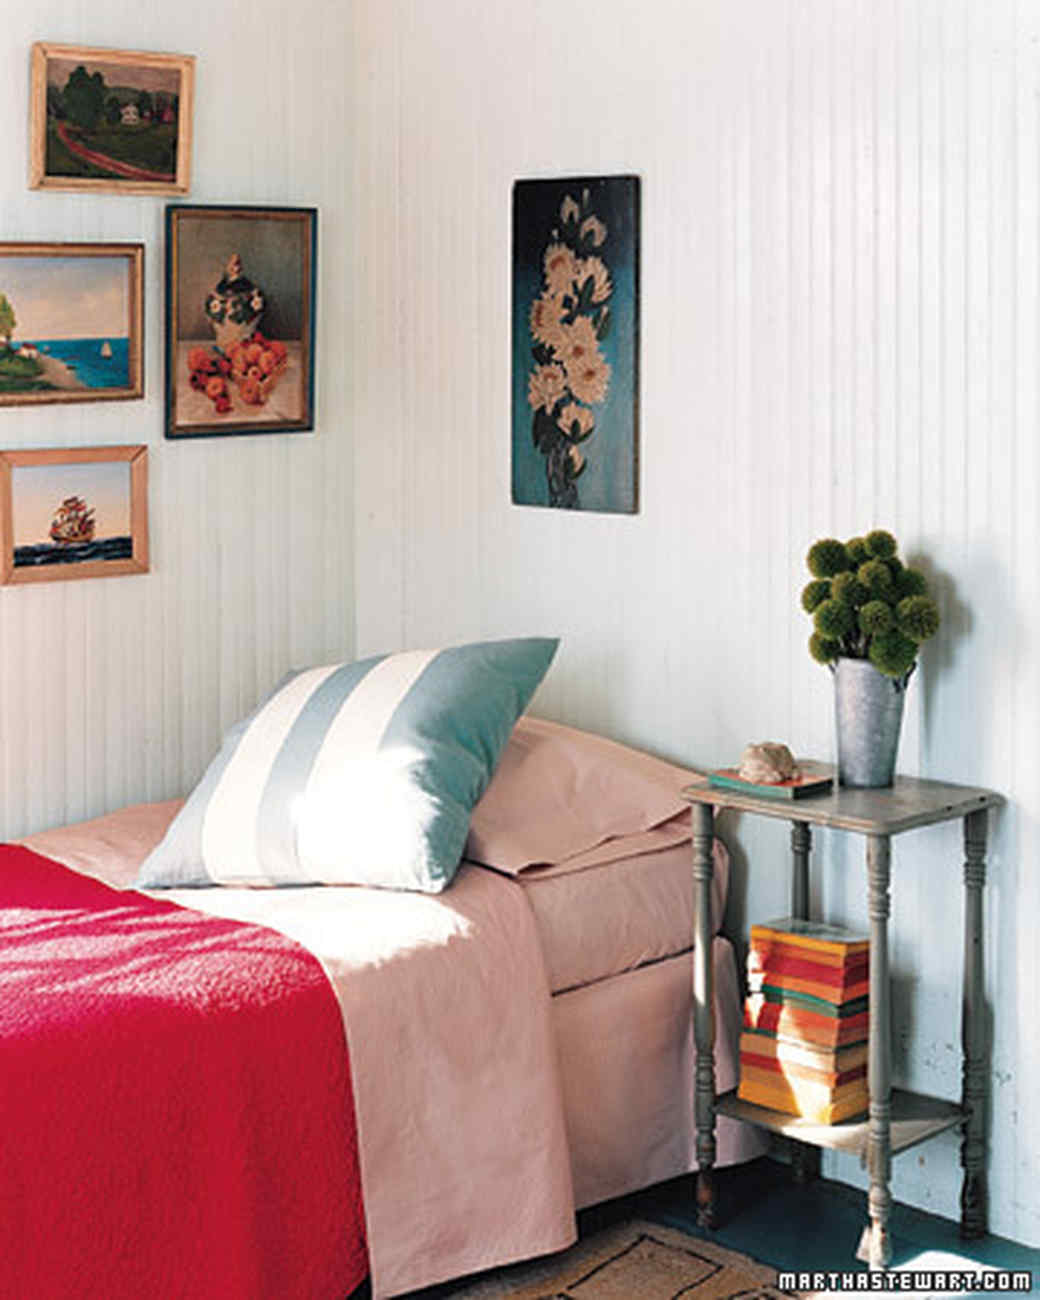 Bedroom Decorating Ideas: Bedroom Decorating Ideas